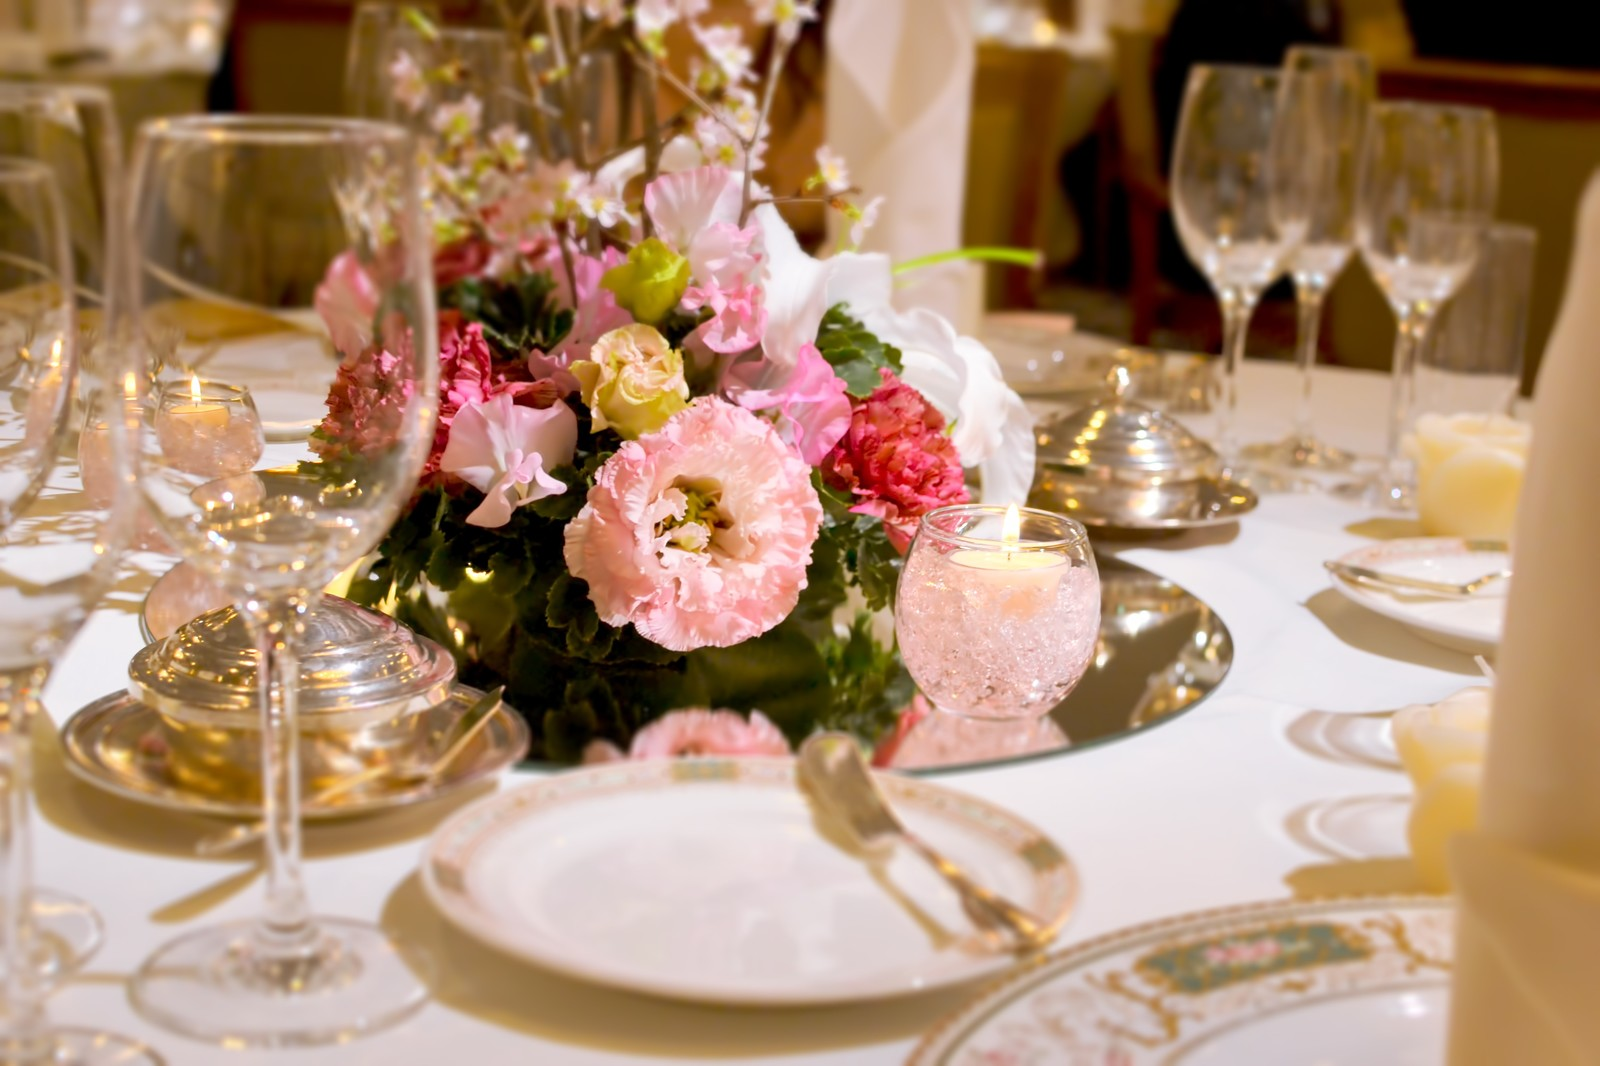 wedding table image (from pakutaso)